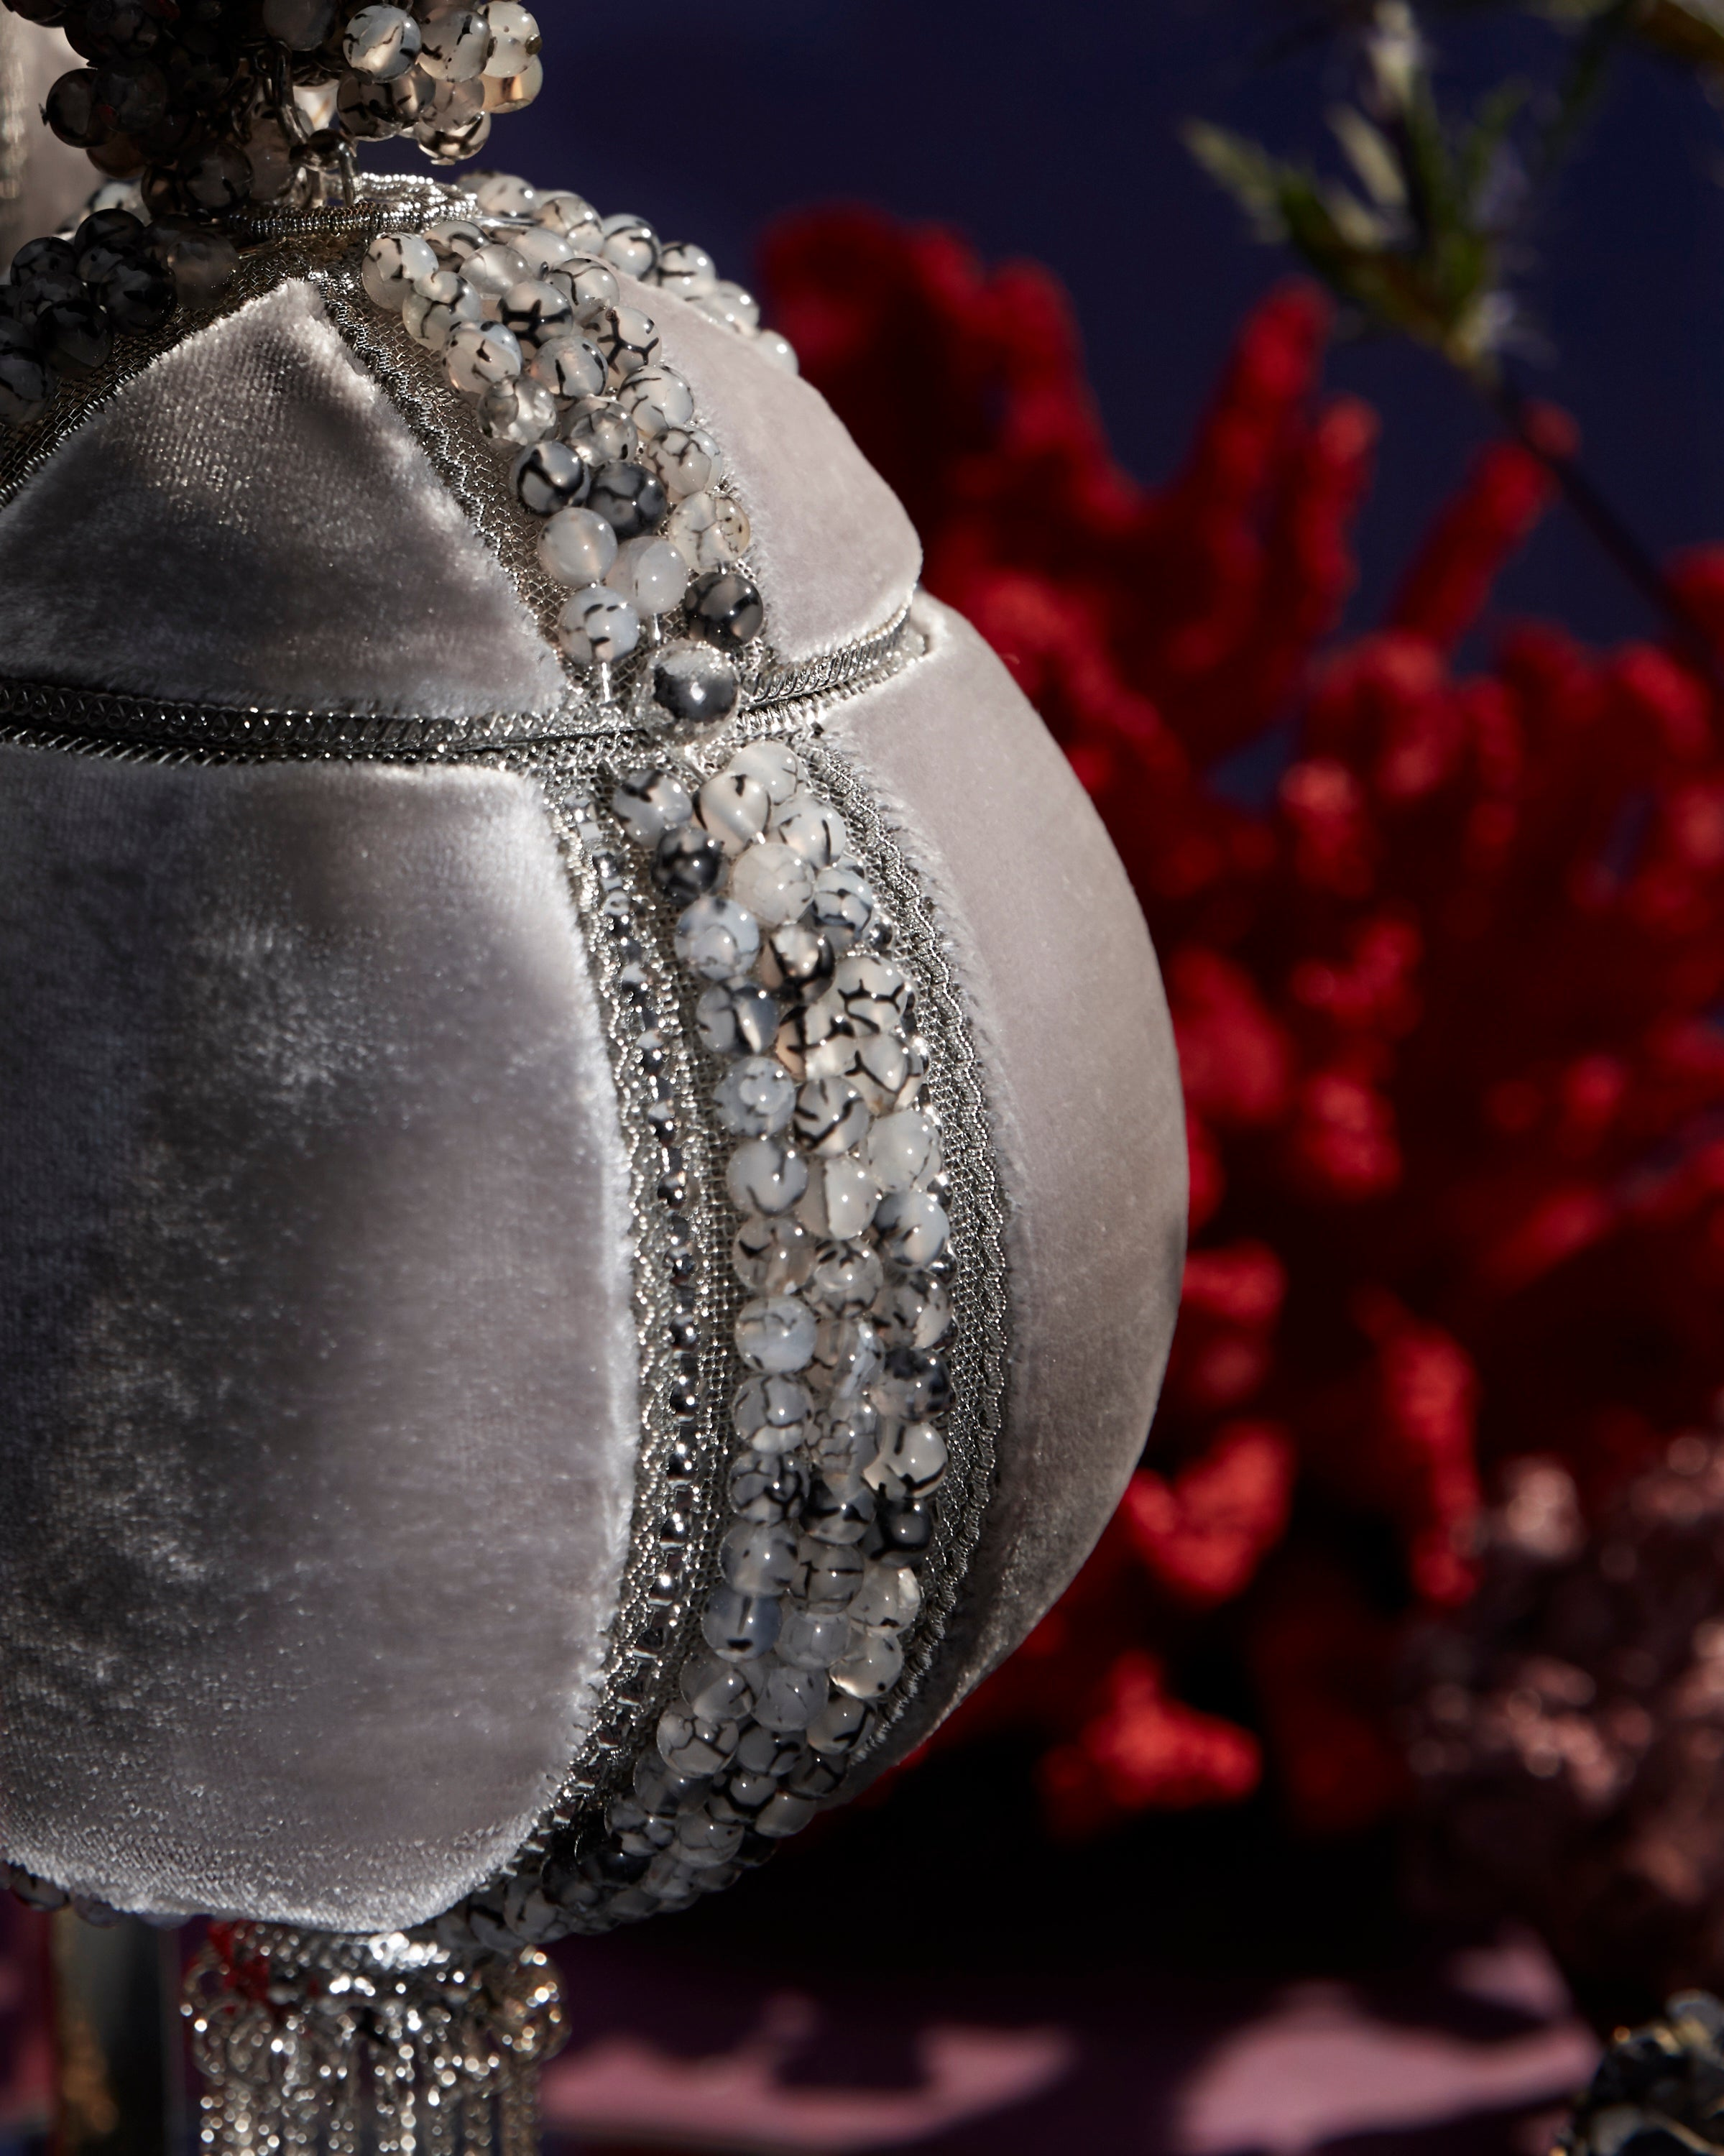 SHOP Mae Cassidy - Only 1 of 100 pieces made as part of our AW20, Limited Edition 'In The Stars' Collection. The Babi Gemstone Bracelet clutch bag, is the ultimate party piece. Handmade from intricate silver-tone metalwork, grey velvet panels and 1200 semi-precious, Grounding Moonstone Grey Agate semi-precious gemstones.